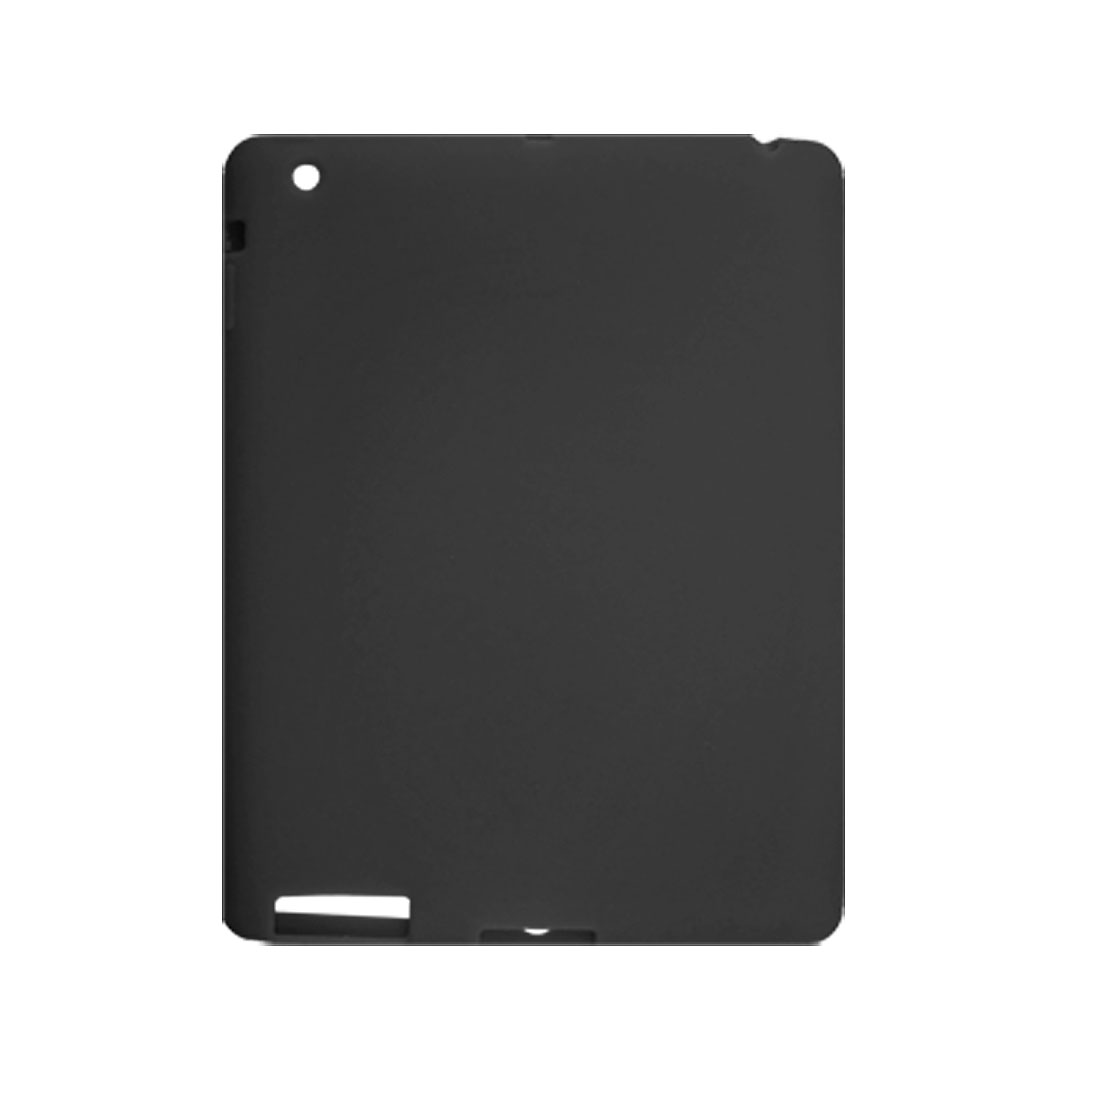 Black Silicone Skin Protector Cover for Apple iPad 2G